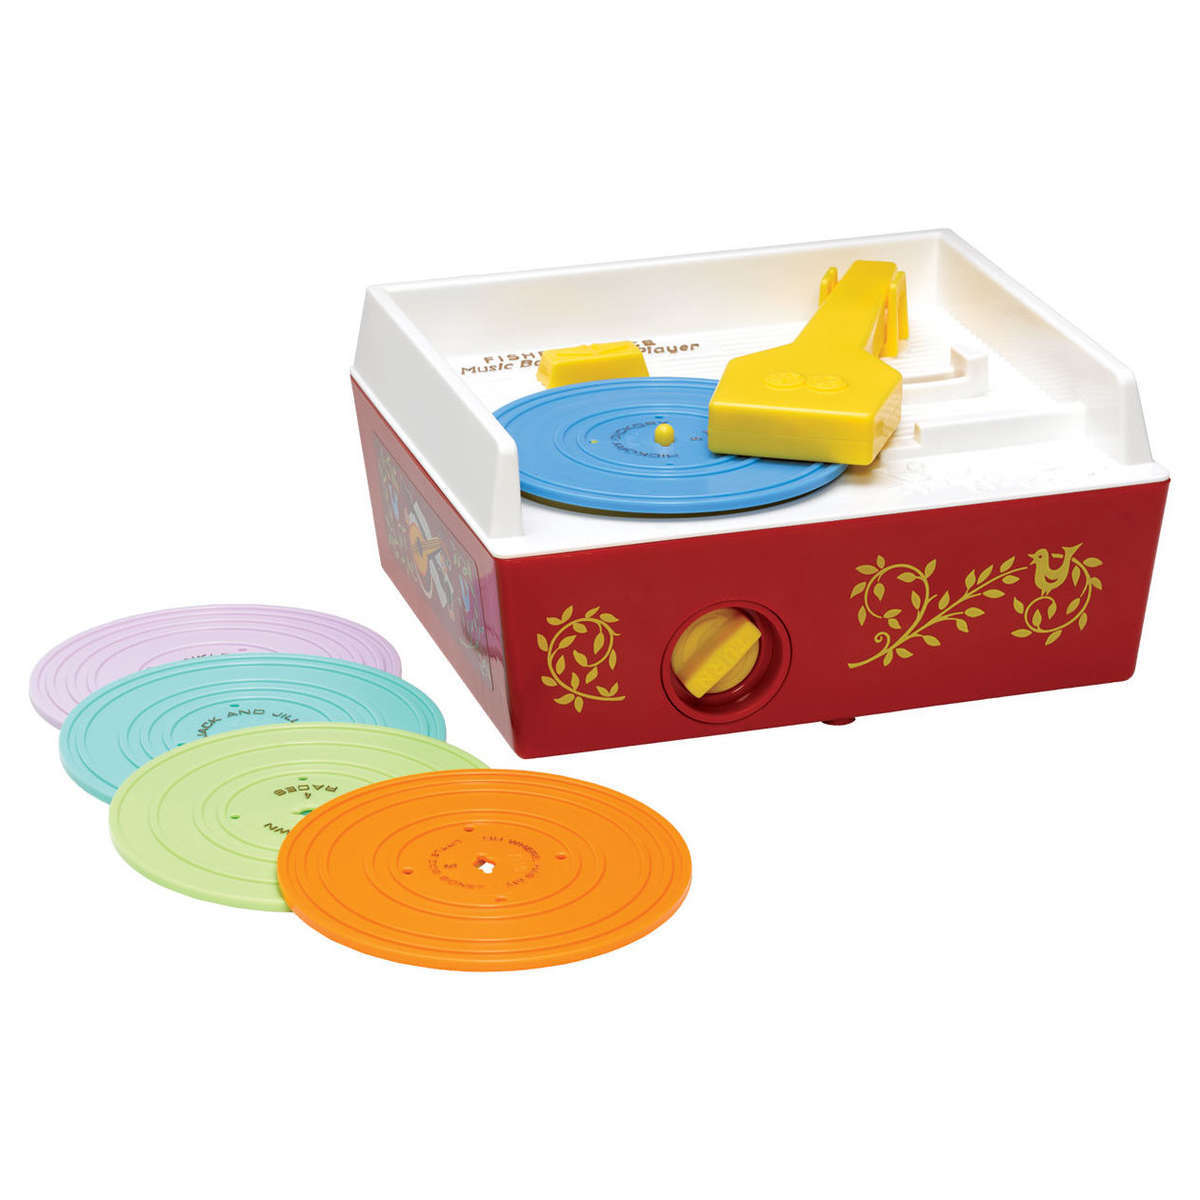 fisher price toys mange disques fisher price classic mes premiers jouets fisher price toys sur. Black Bedroom Furniture Sets. Home Design Ideas